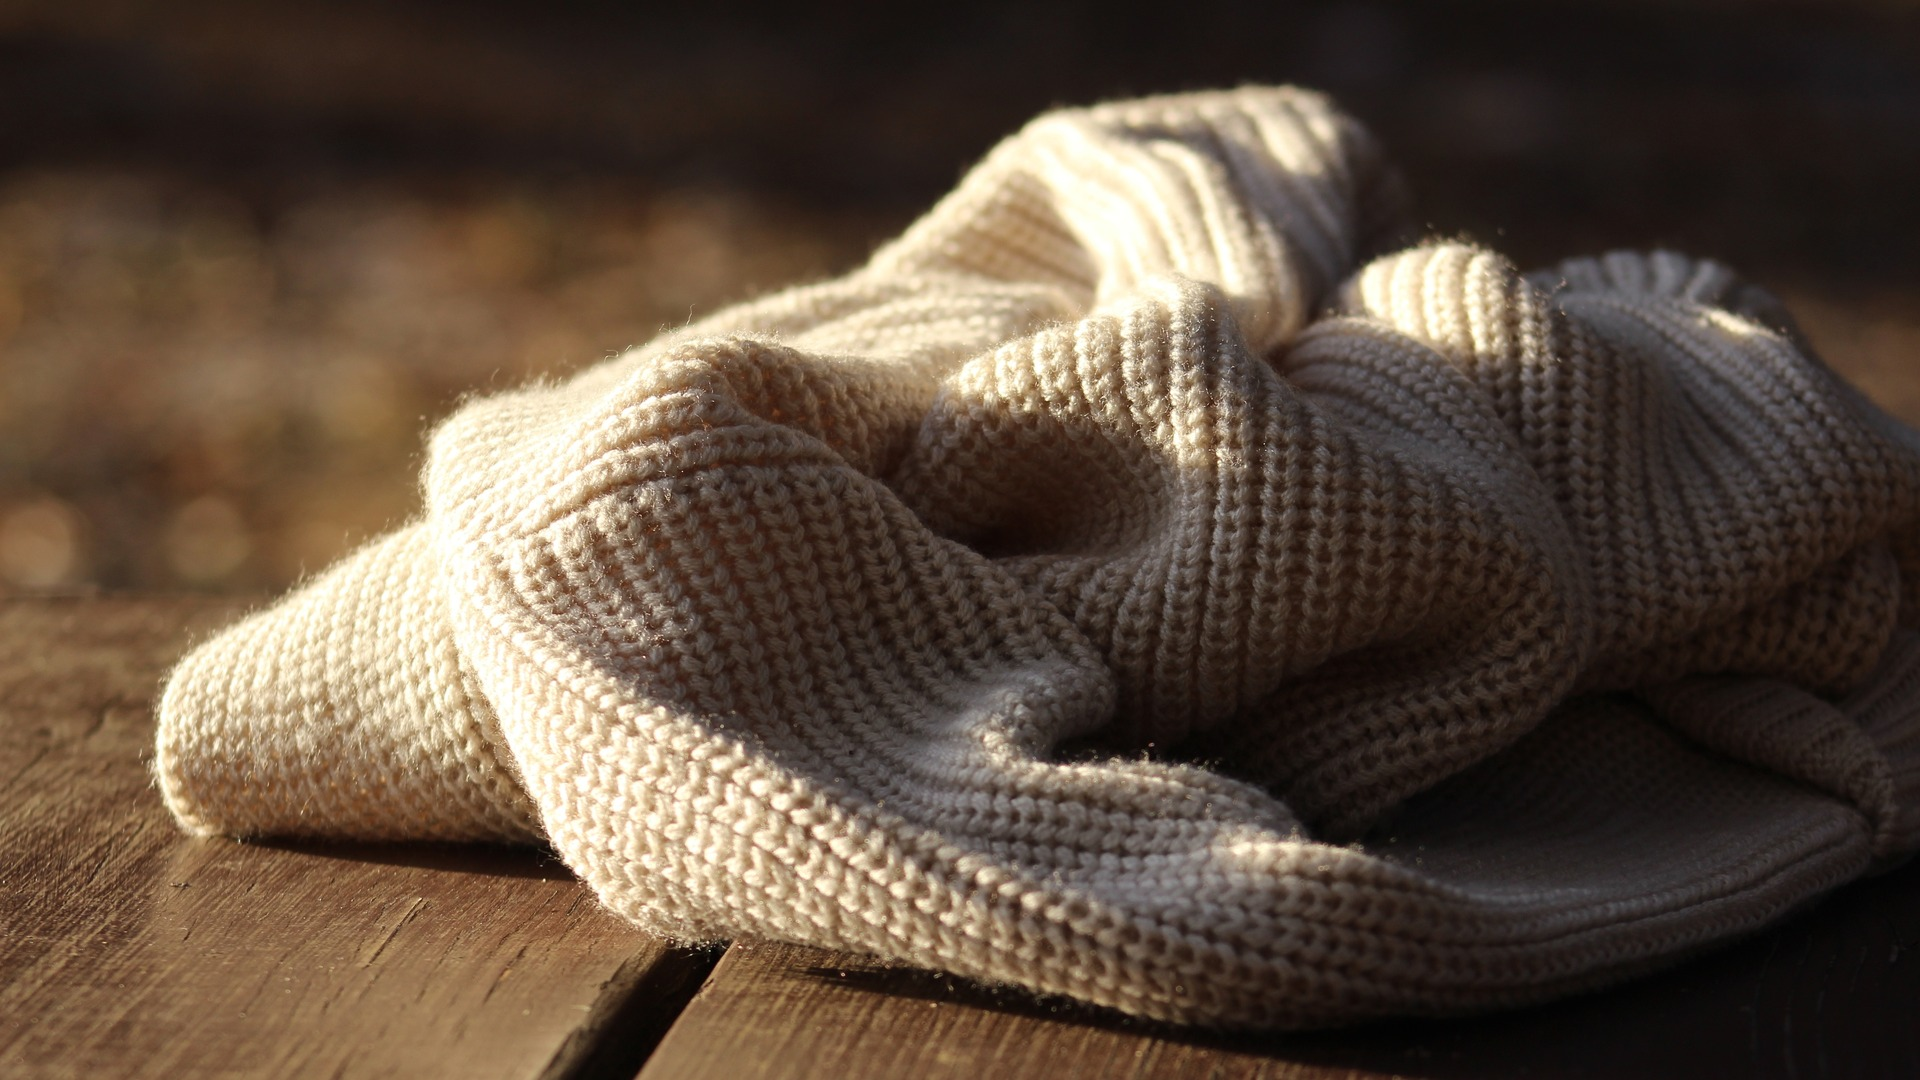 Wool scarf or sweater draped on surface